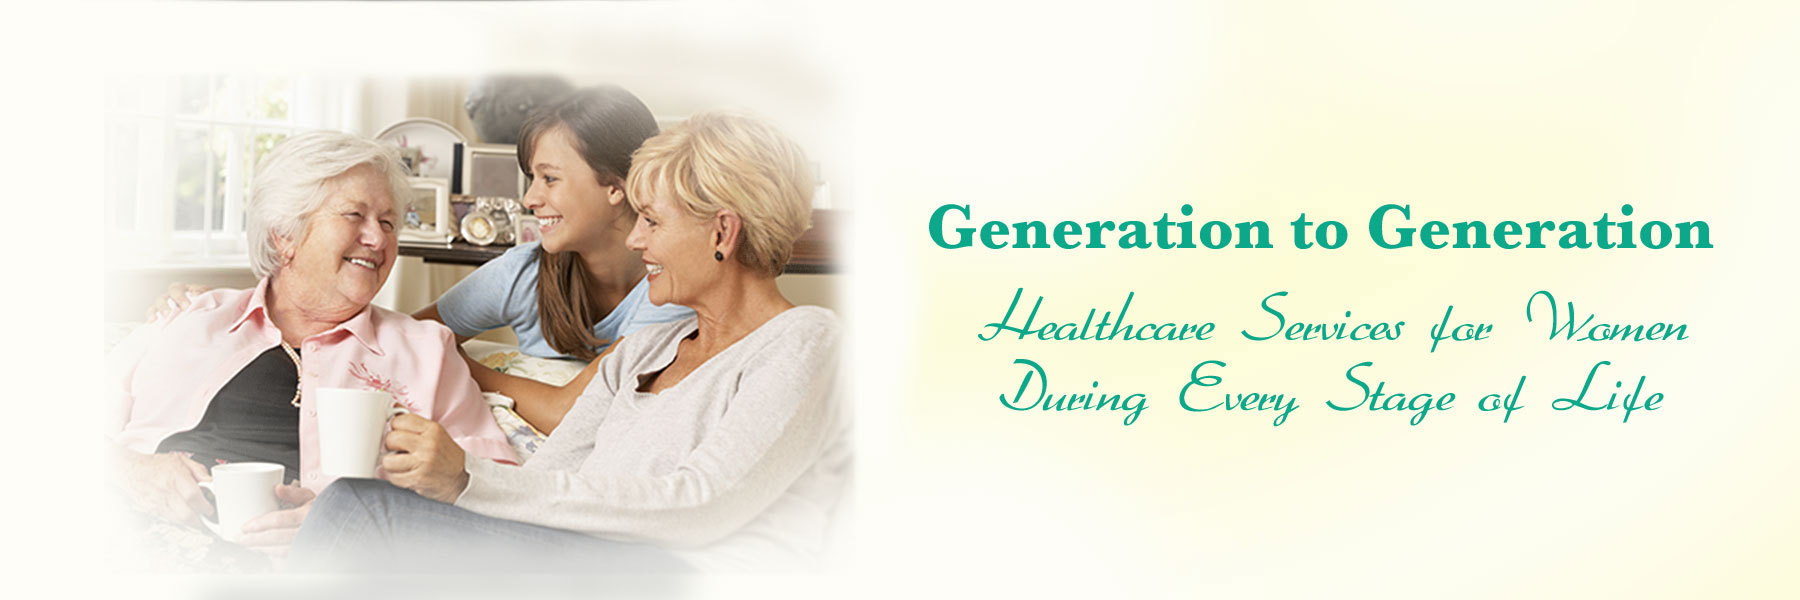 Healthcare Services for Women during every stage of life